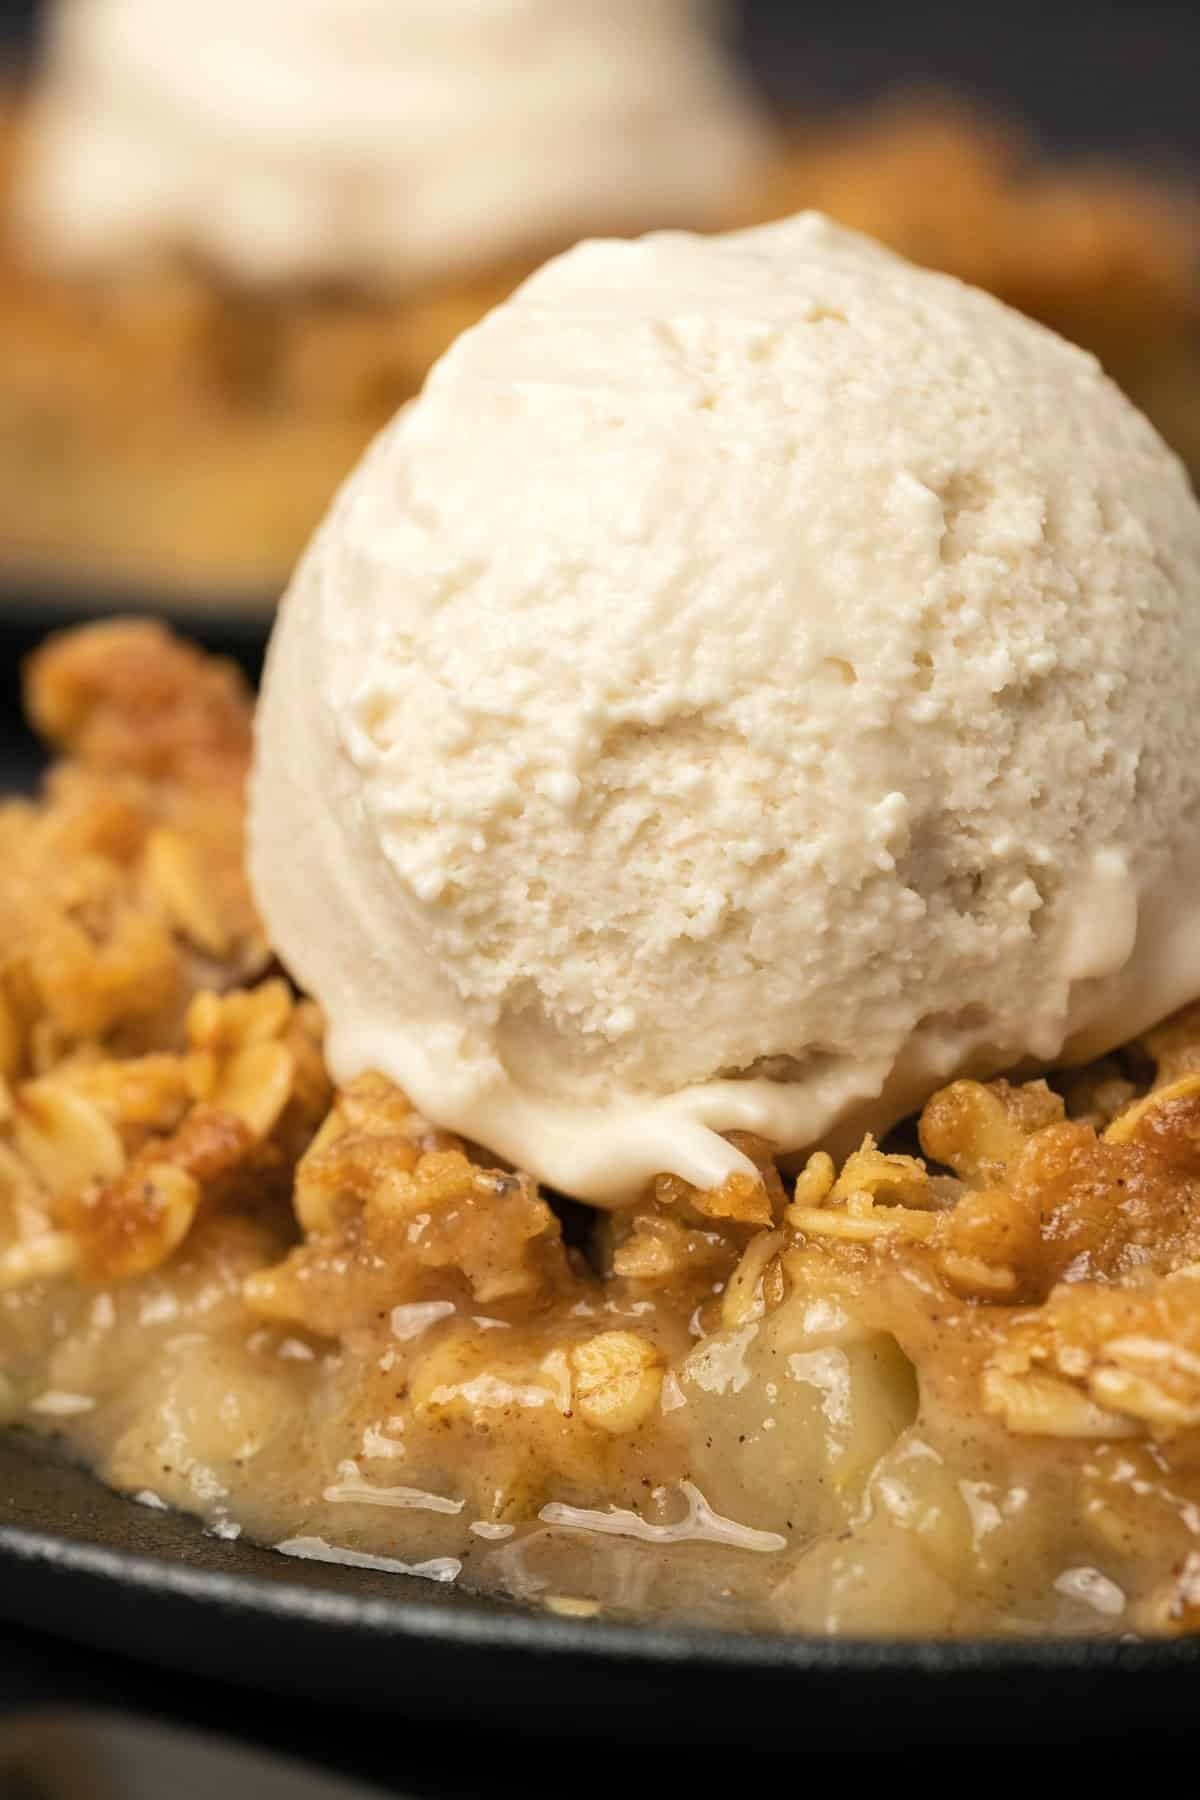 Slice of apple crisp topped with a scoop of vanilla ice cream.